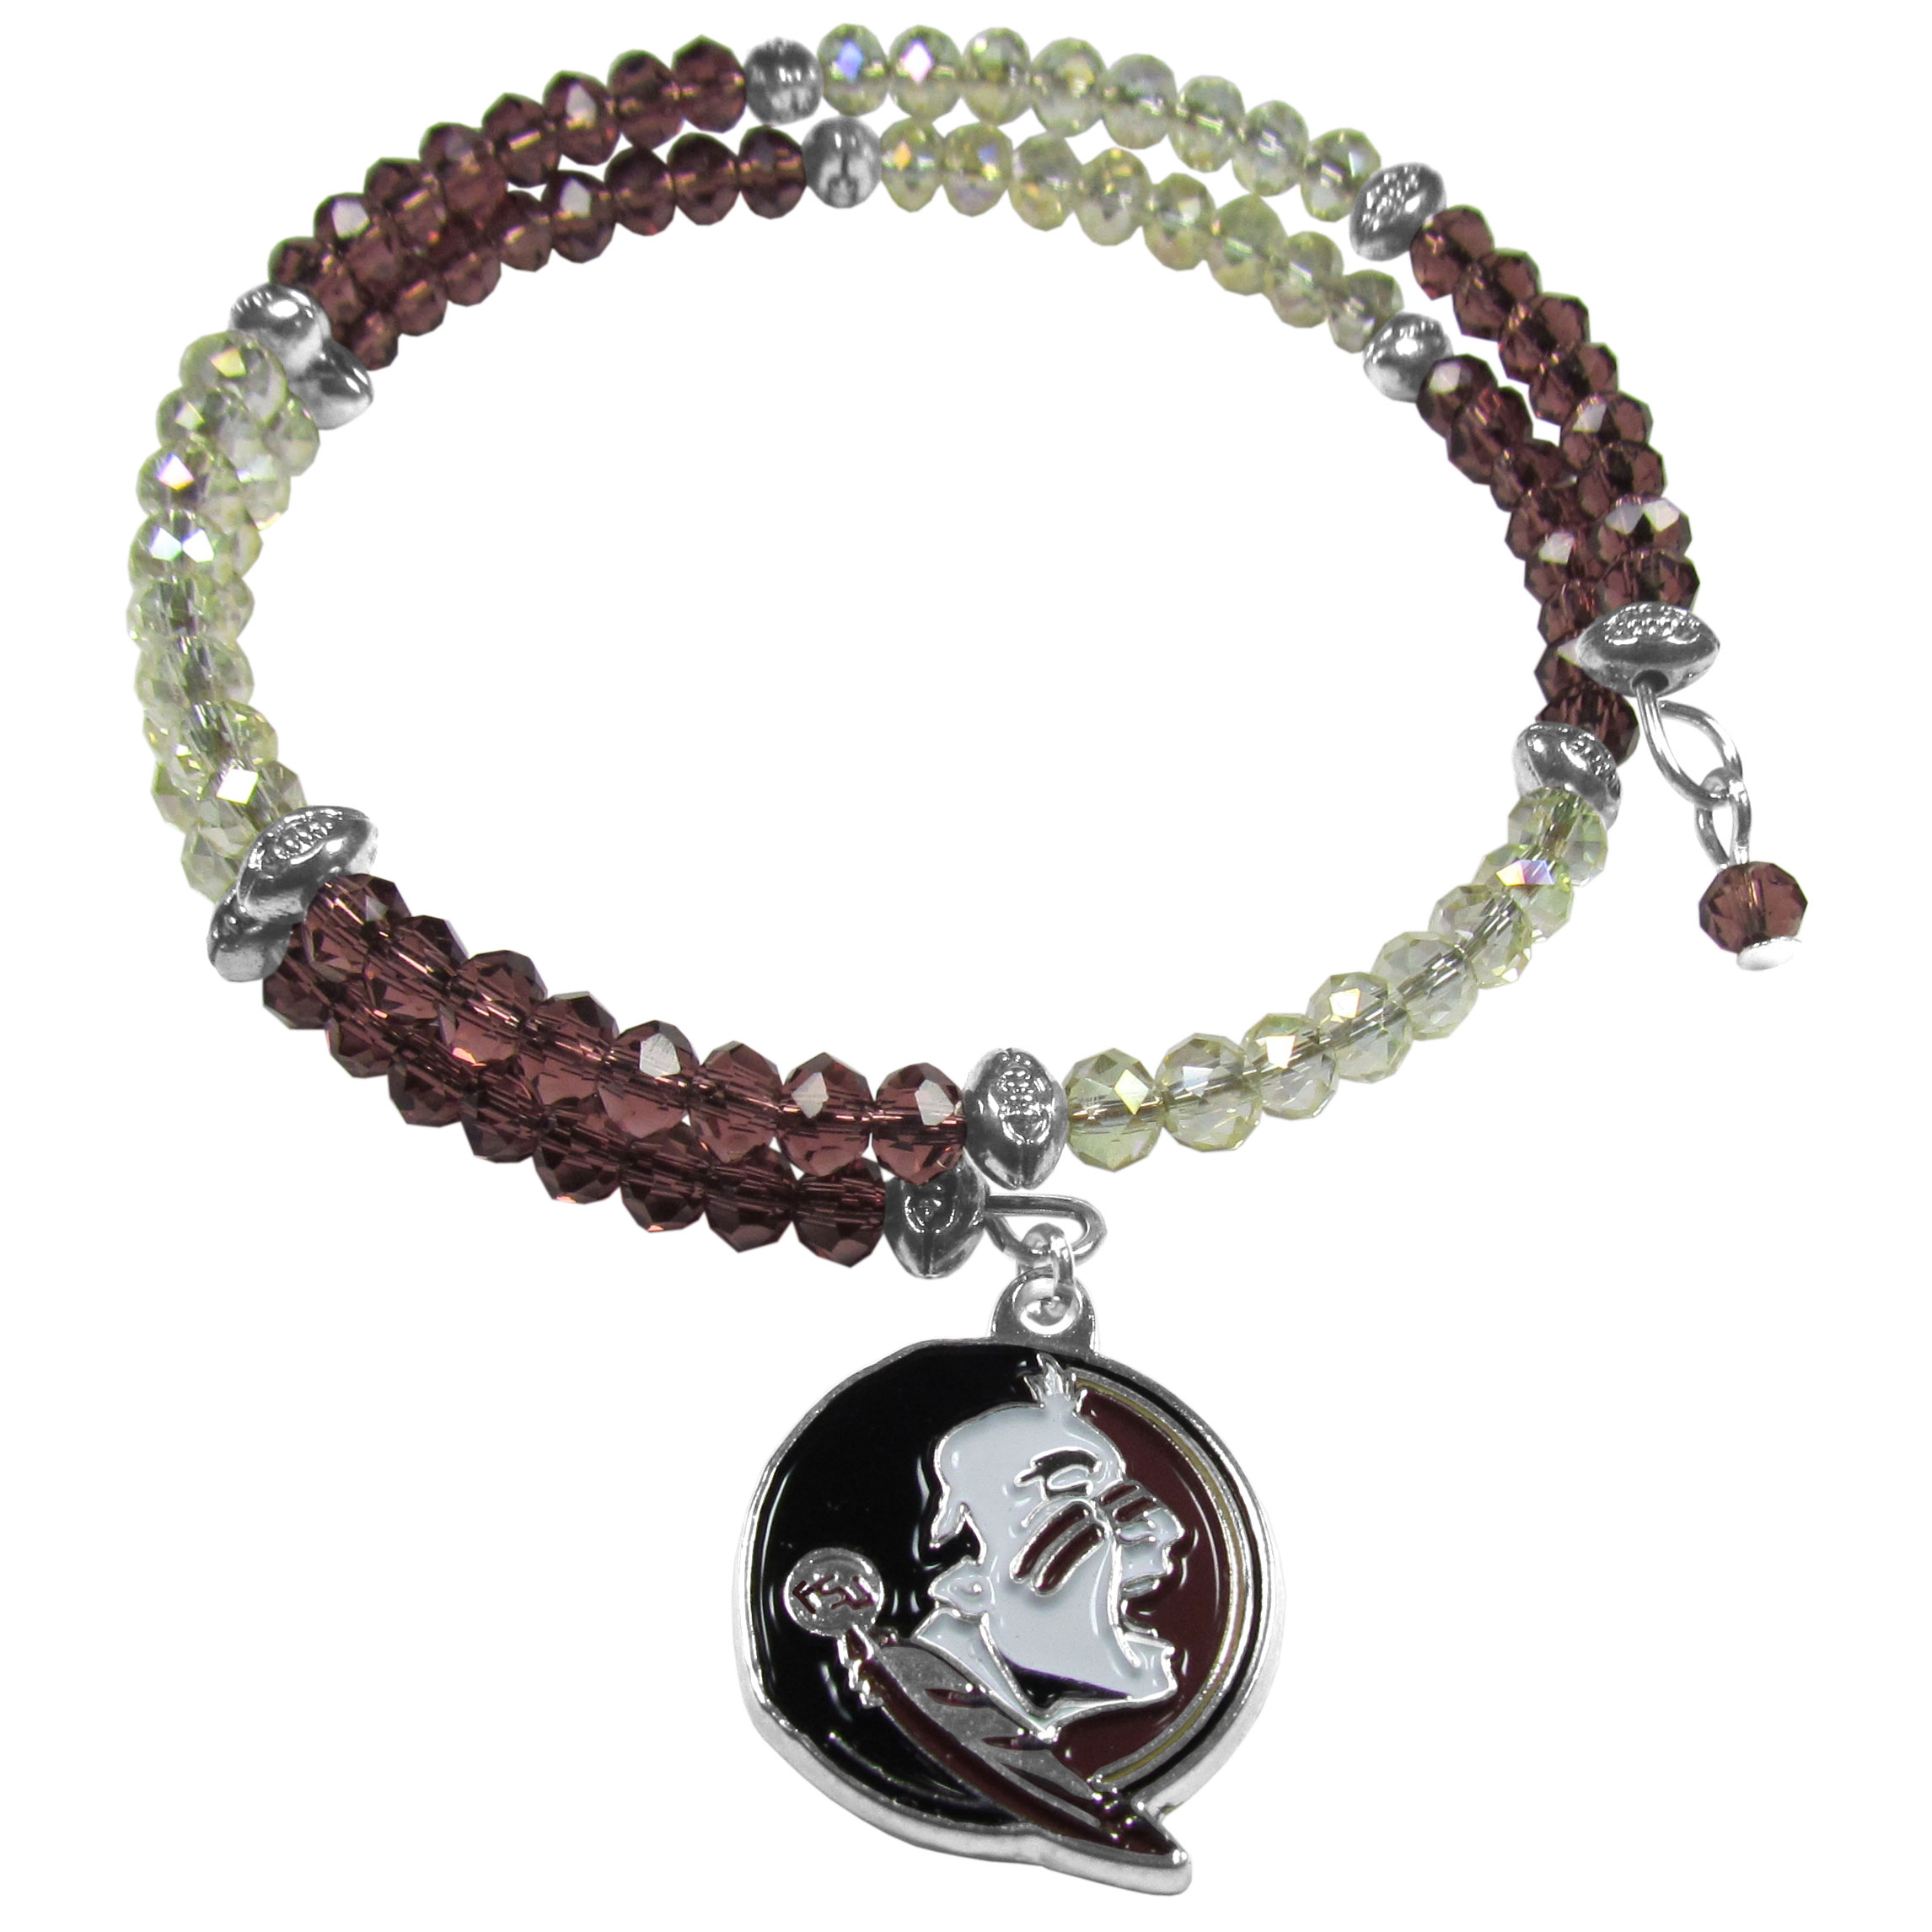 Florida St. Seminoles Crystal Memory Wire Bracelet - Our Florida St. Seminoles memory wire crystal bracelet is trendy way to show off your love of the game. The double wrap bracelet is completely covered in 4 mm crystals that are broken up with adorable football beads creating a designer look with a sporty twist. The bracelet features a fully cast, metal team charm that has expertly enameled team colors. This fashion jewelry piece is a must-have for the die-hard fan with chic style.